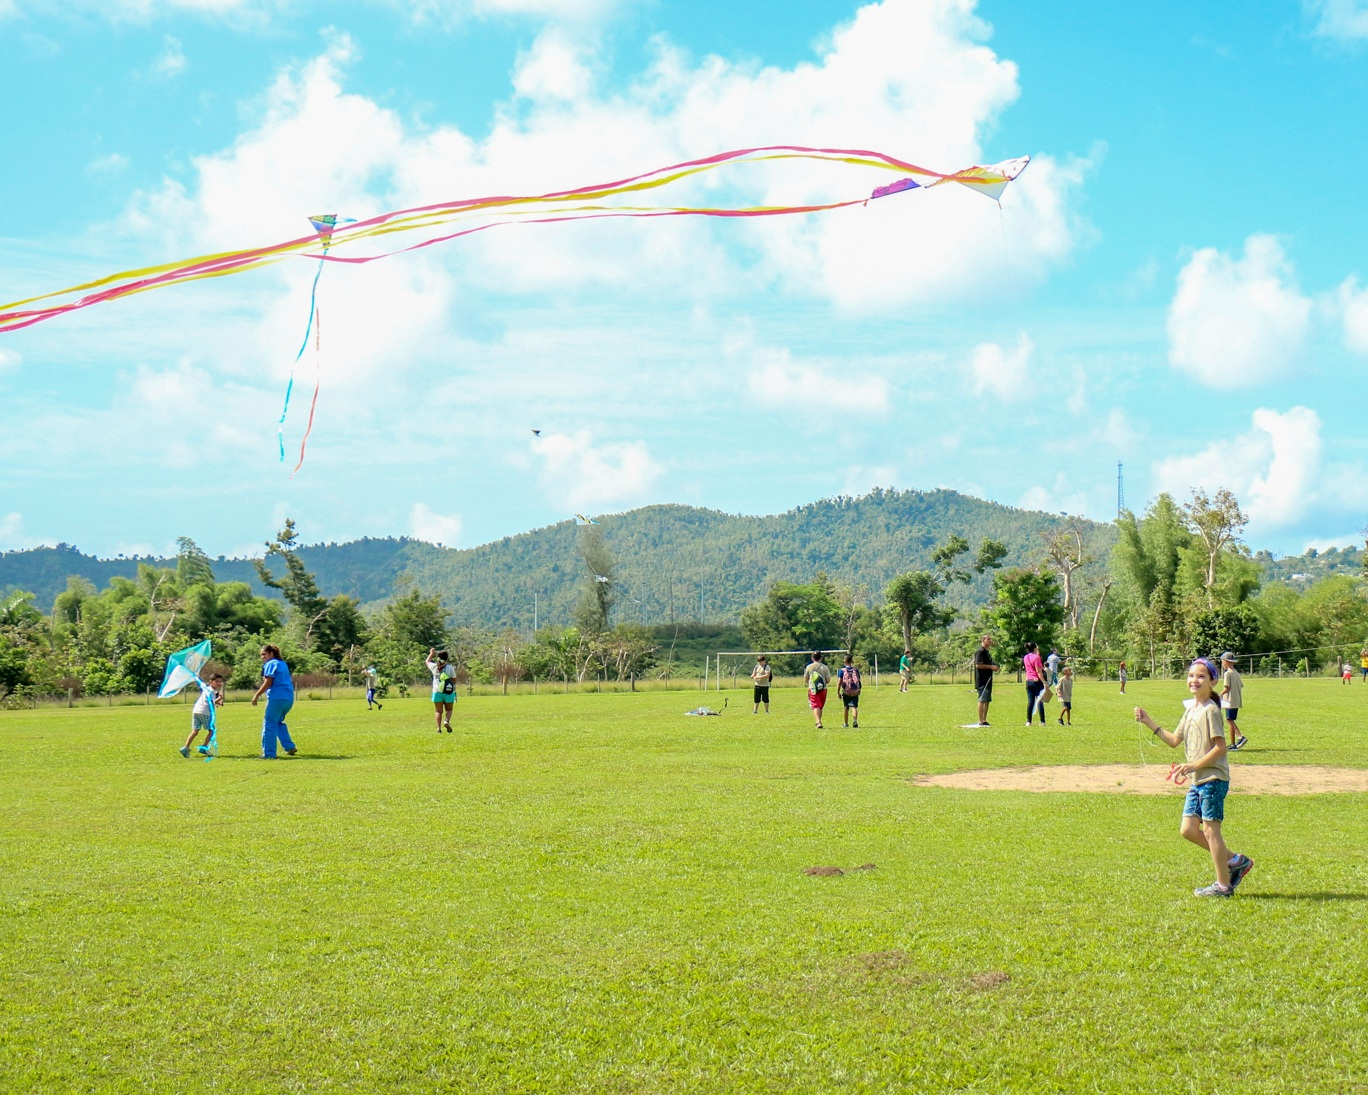 Kite flying with parents